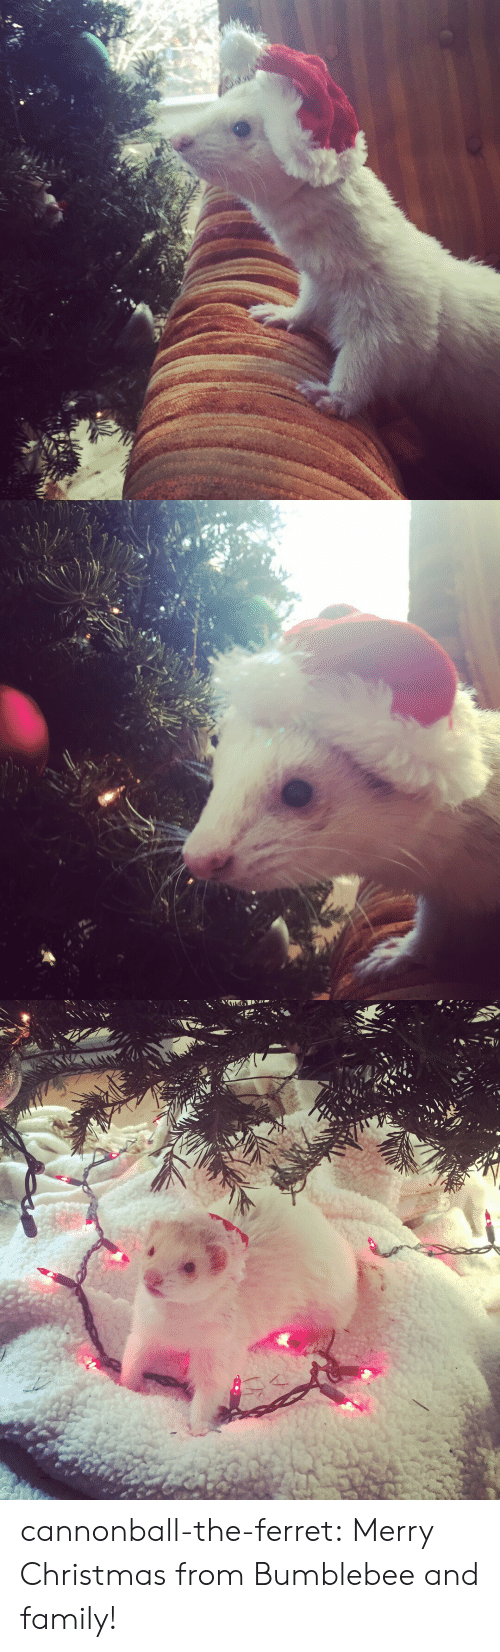 Ferret: cannonball-the-ferret:  Merry Christmas from Bumblebee and family!